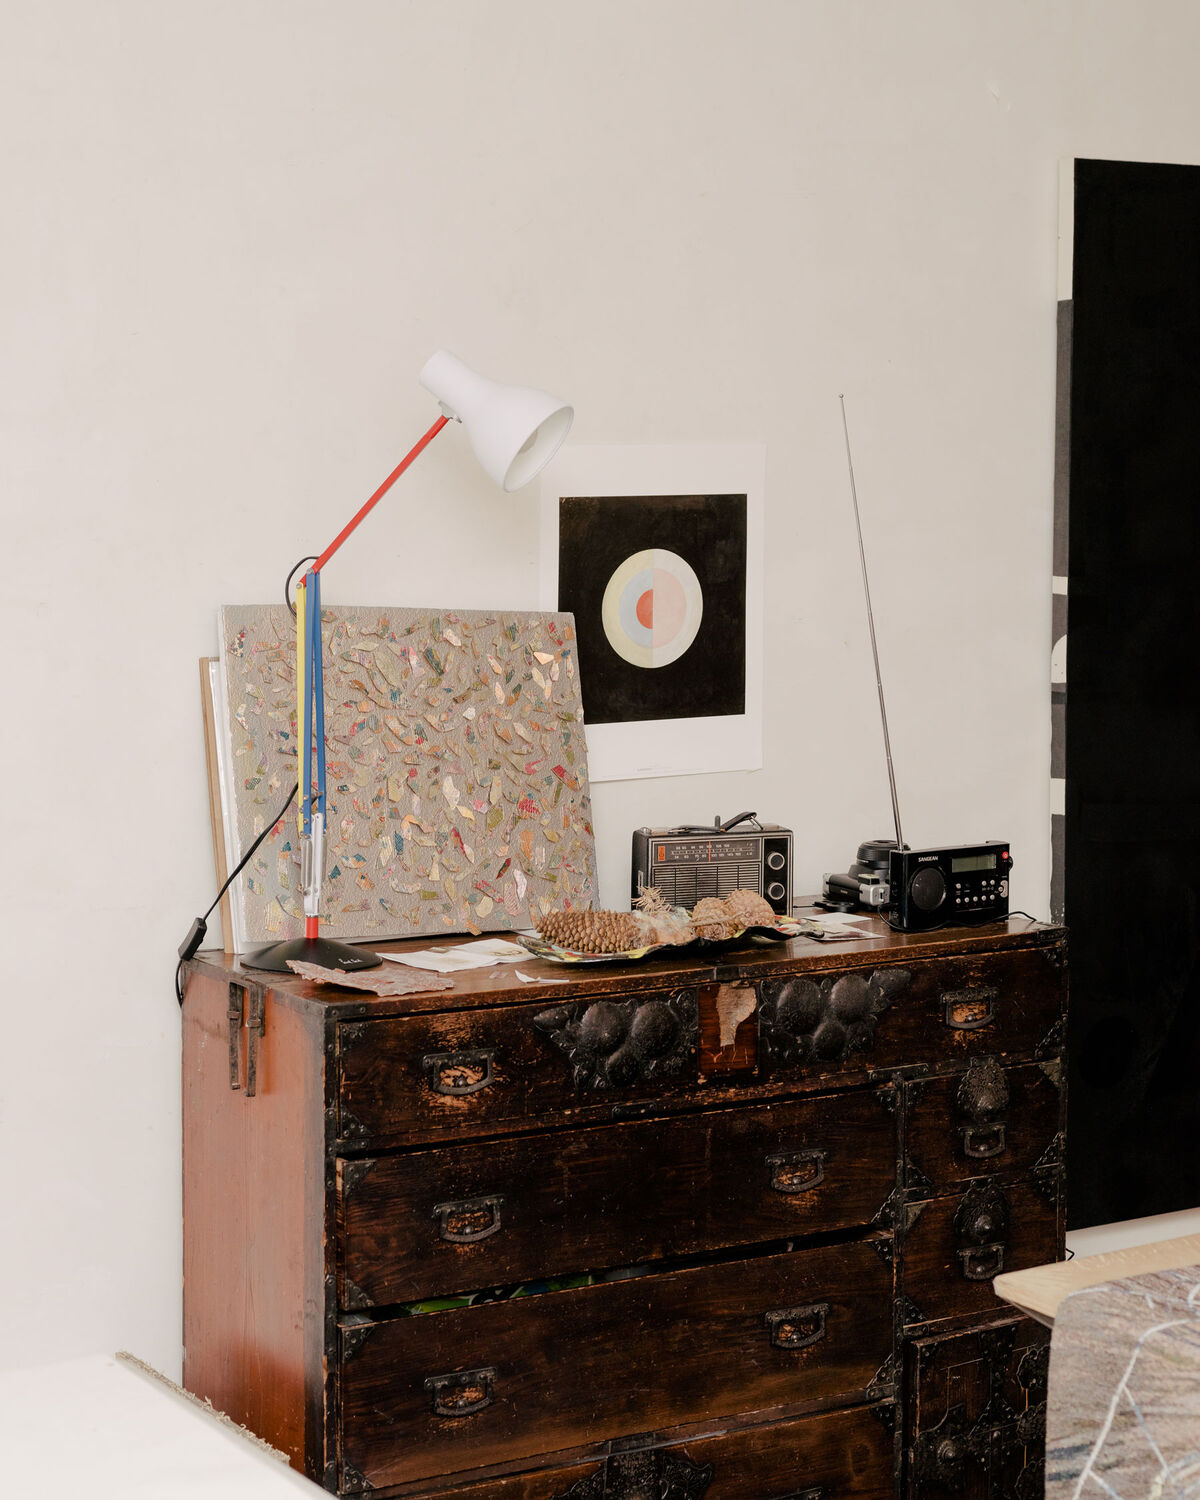 Detail of Kiki Smith's home and studio, featuring a print by Hilma af Klint (center). Photo by Daniel Dorsa for Artsy.